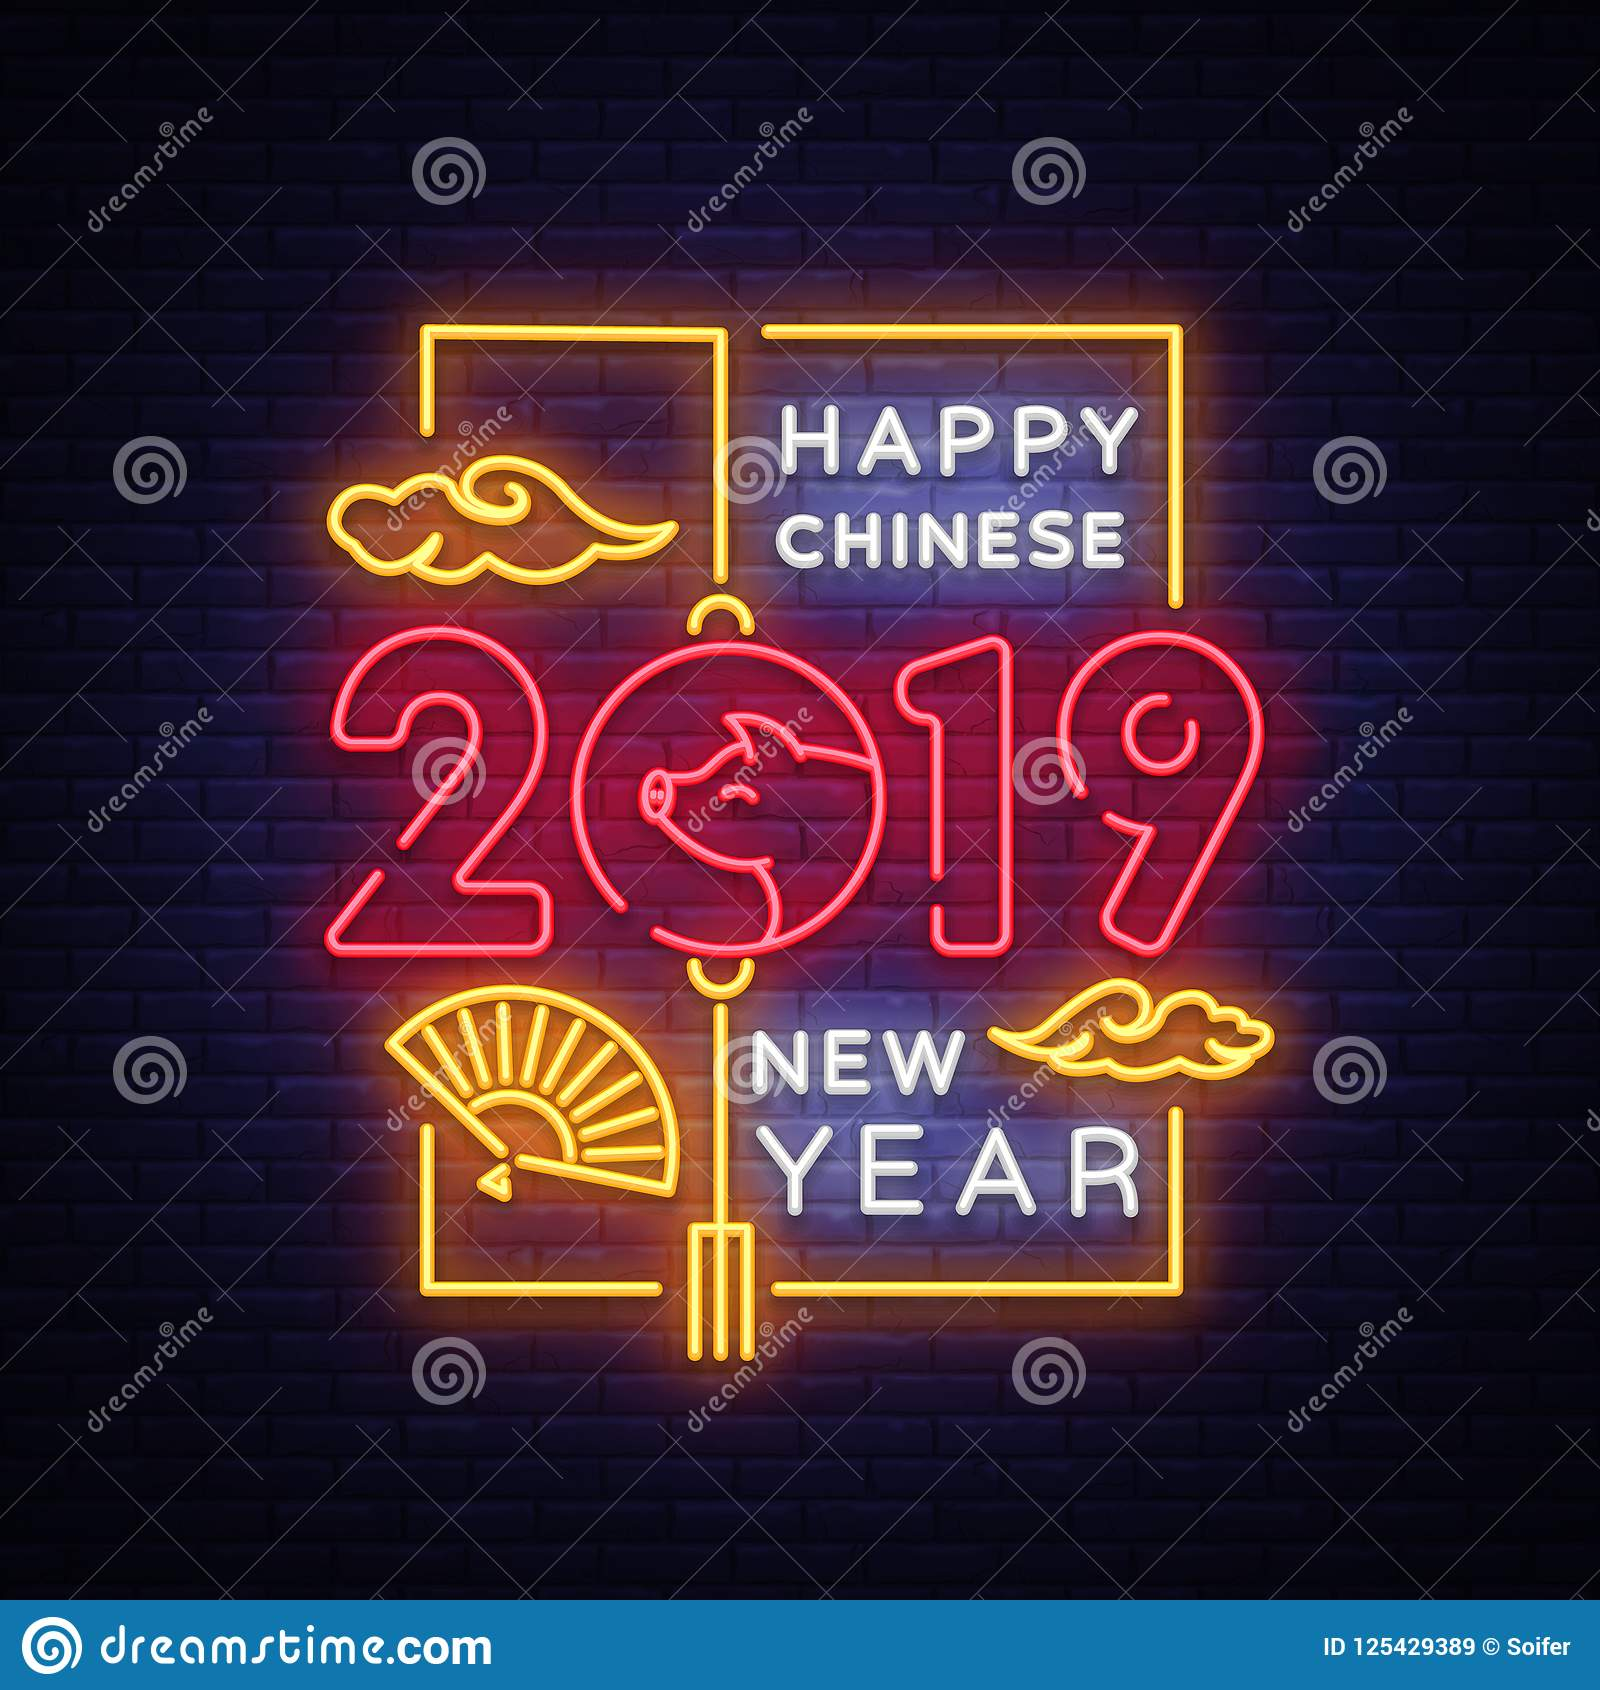 happy chinese new year 2019 year of the pig greeting card in neon style chinese new year design template zodiac sign for greetings card flyers